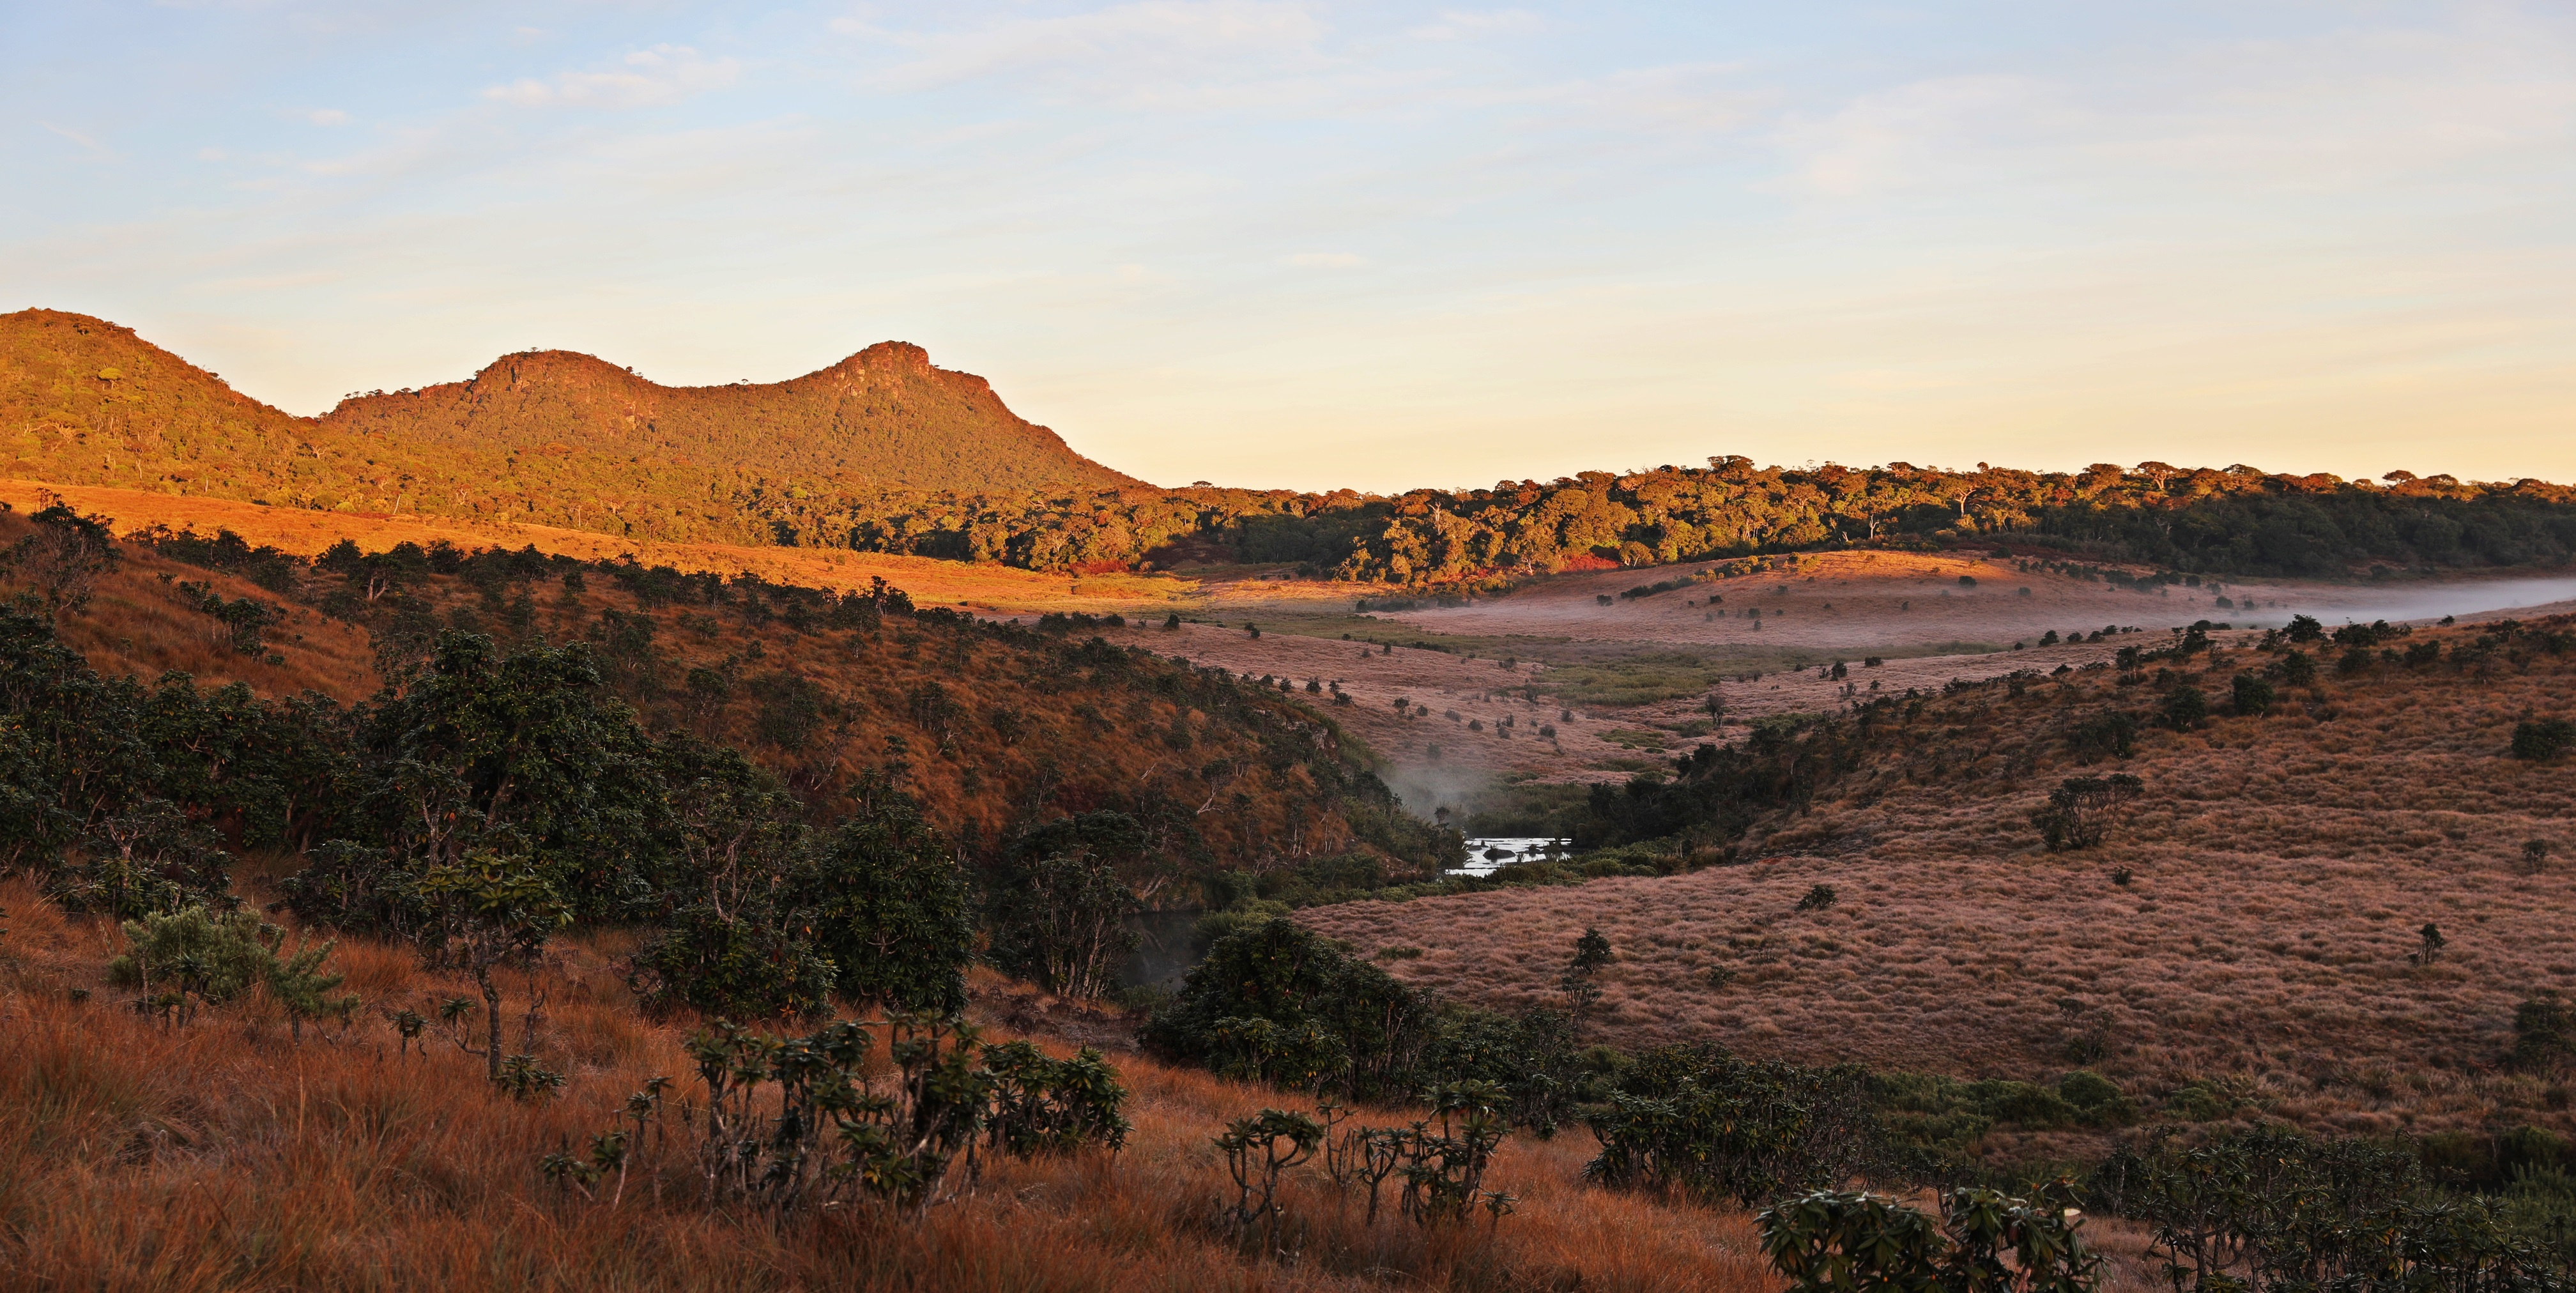 Montane Grassland at sunrise, Horton Plains